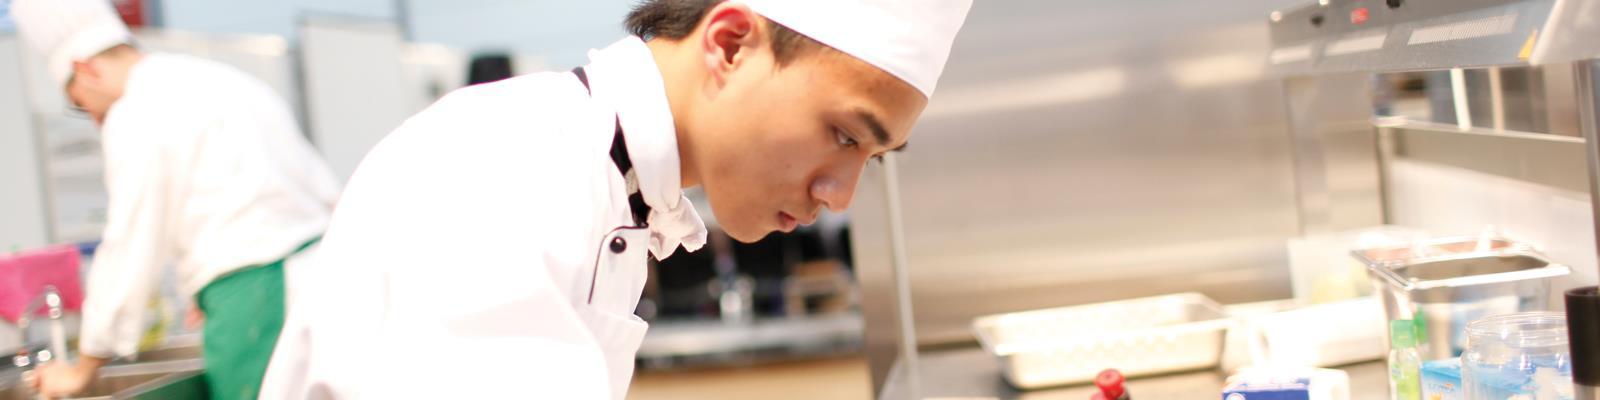 Cookery student/chef preparing food in kitchens